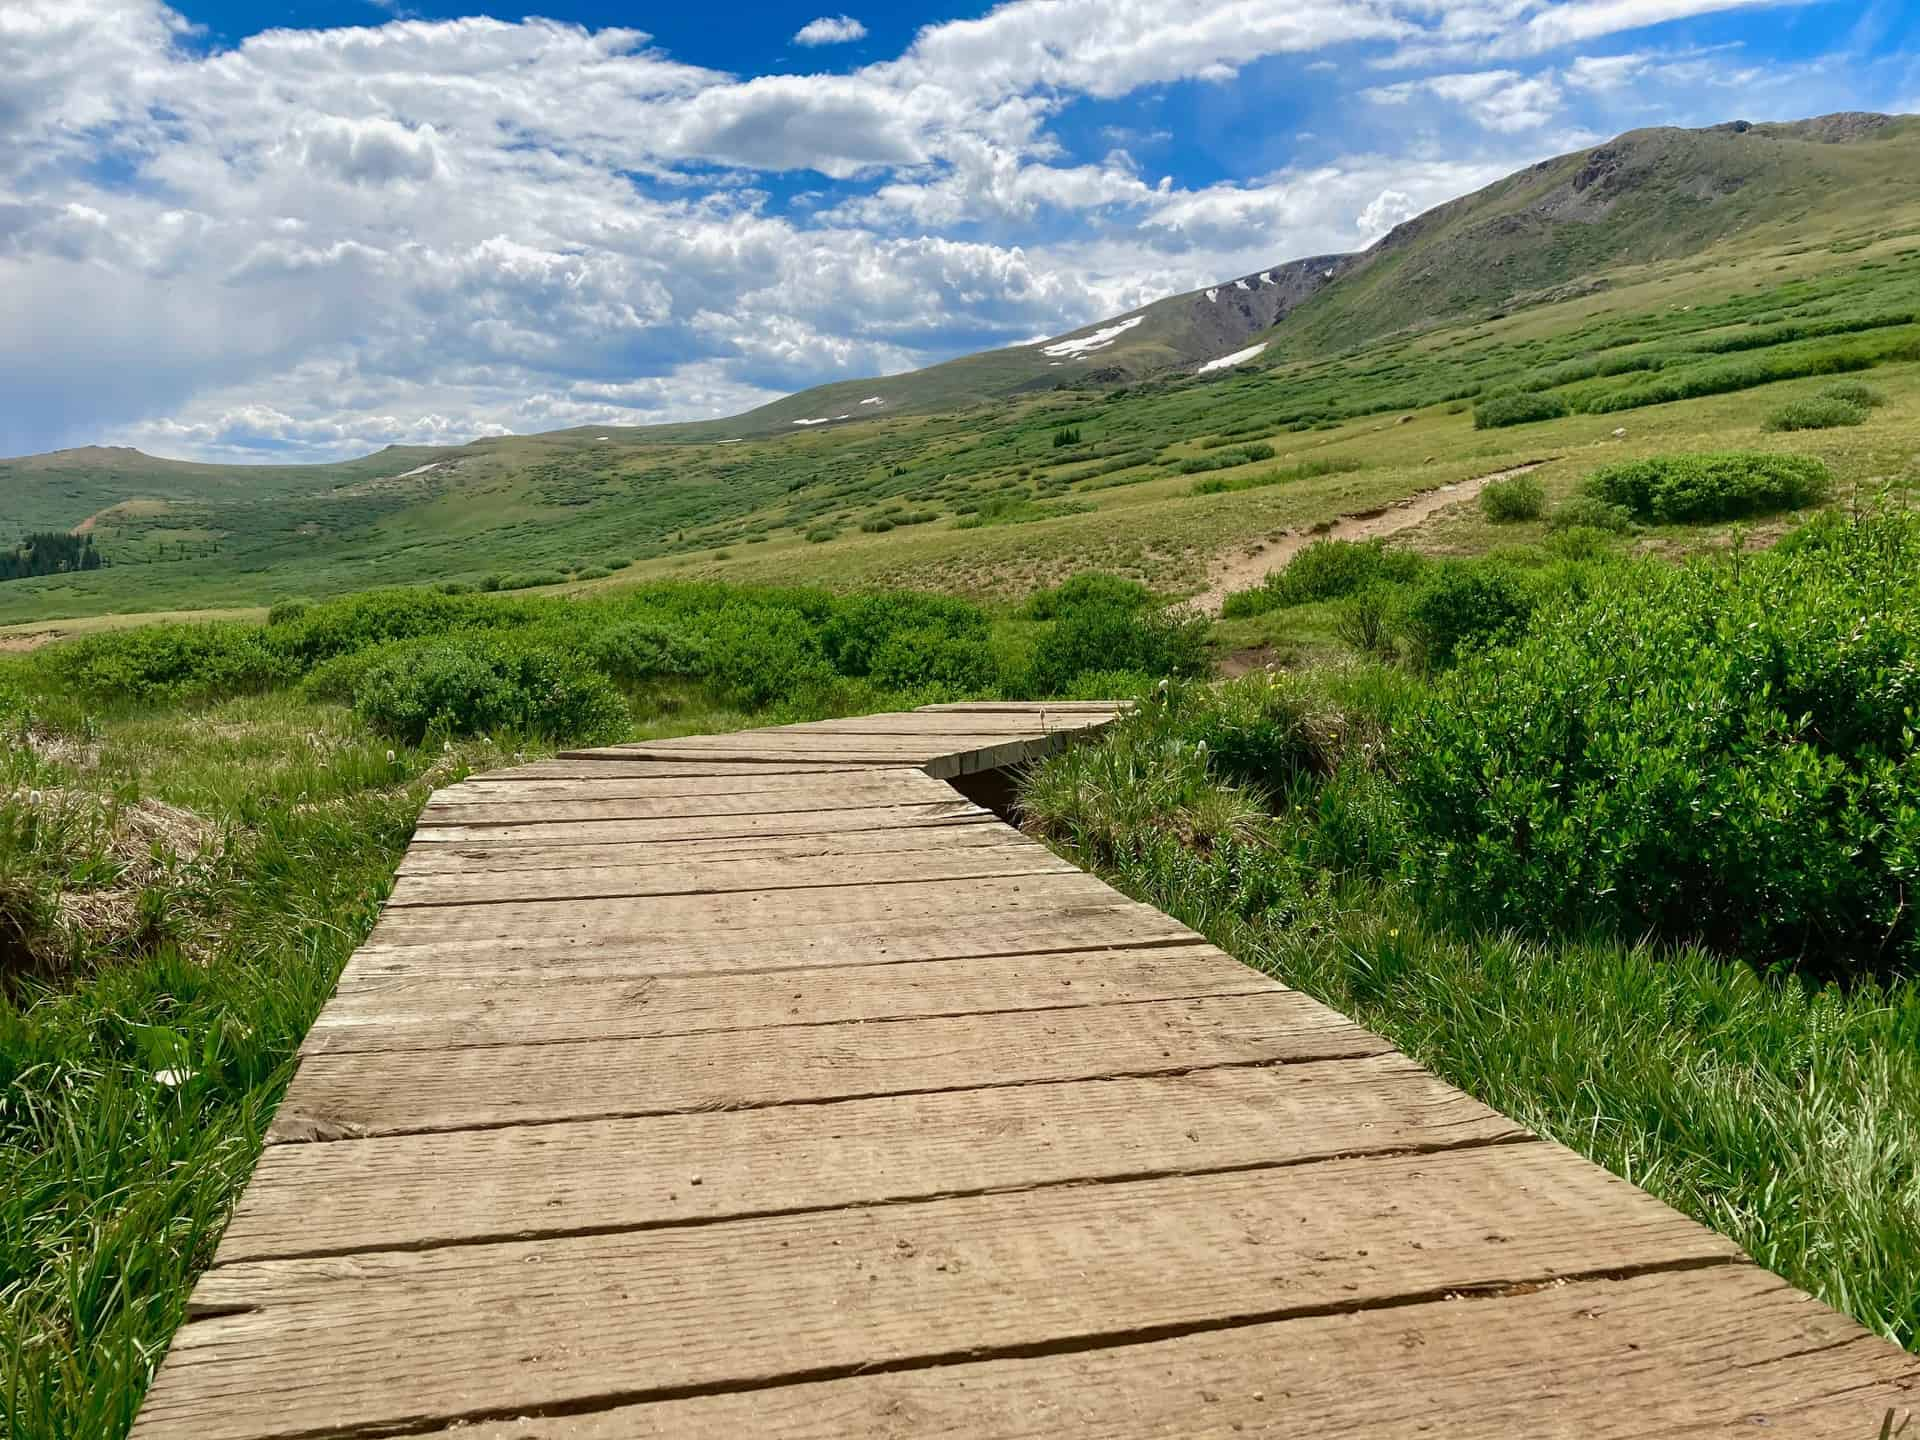 Square Top Lakes trail boardwalk on Guanella Pass